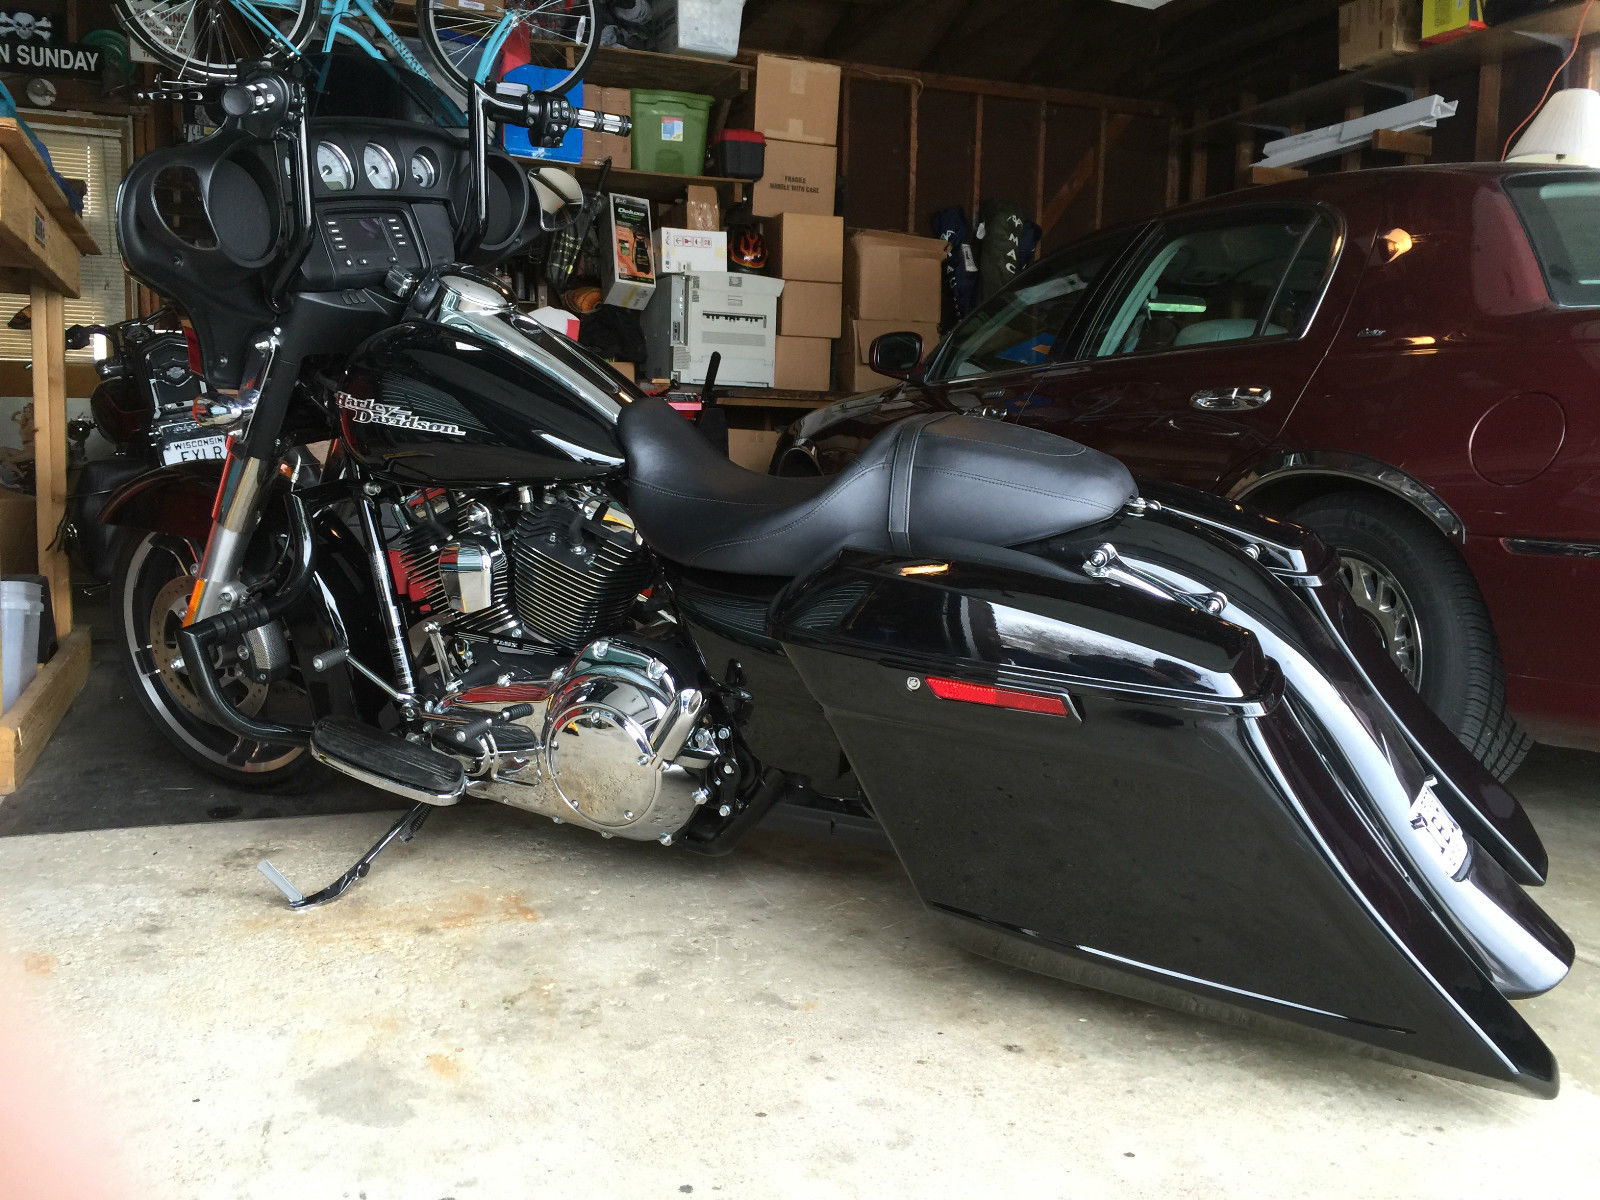 Harley Street Glide Radio Wiring Diagram Will Be A 2015 Dyna Road Fuse Box Parts Auto 2014 Davidson 2016